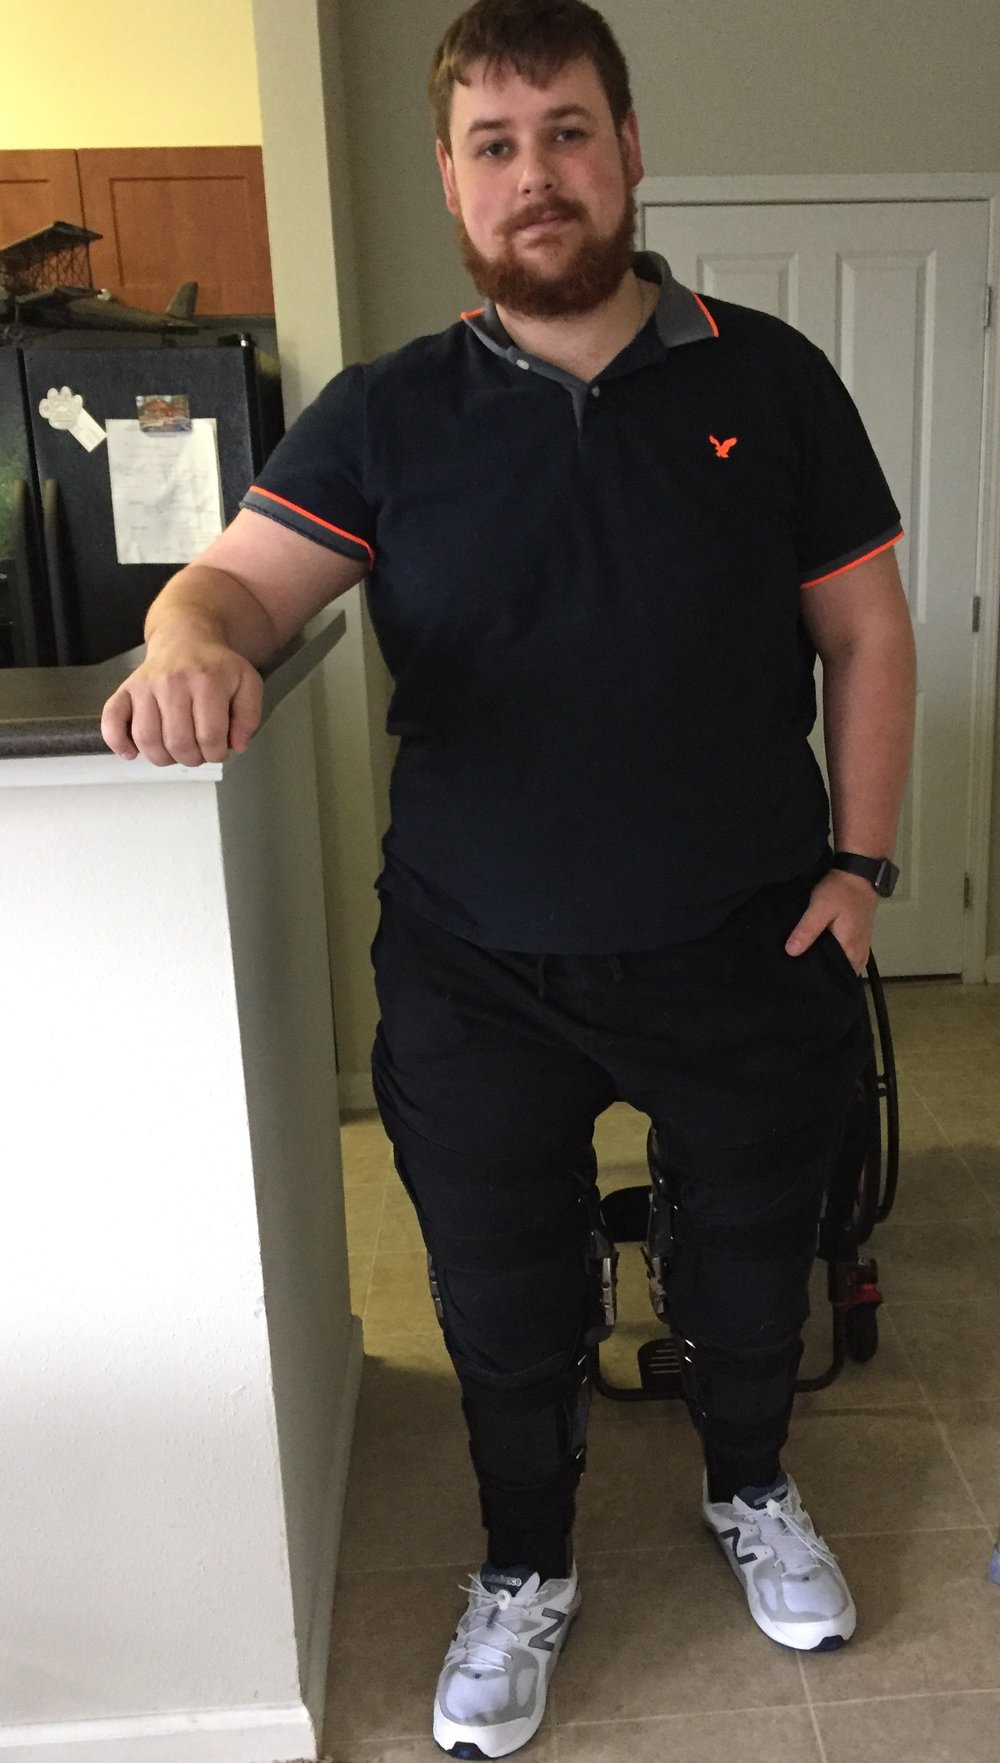 James Donahue  T11, ASIA C, Paraplegic   Enhanced Peer Mentor   -I was injured and 2016  -My hobbies are software development mama firearms clicking, and I am a semi pro video game. I'm also involved officer positions few charity organizations.  -I started working with the GBC in 2018 as an Enhanced Peer Mentor.